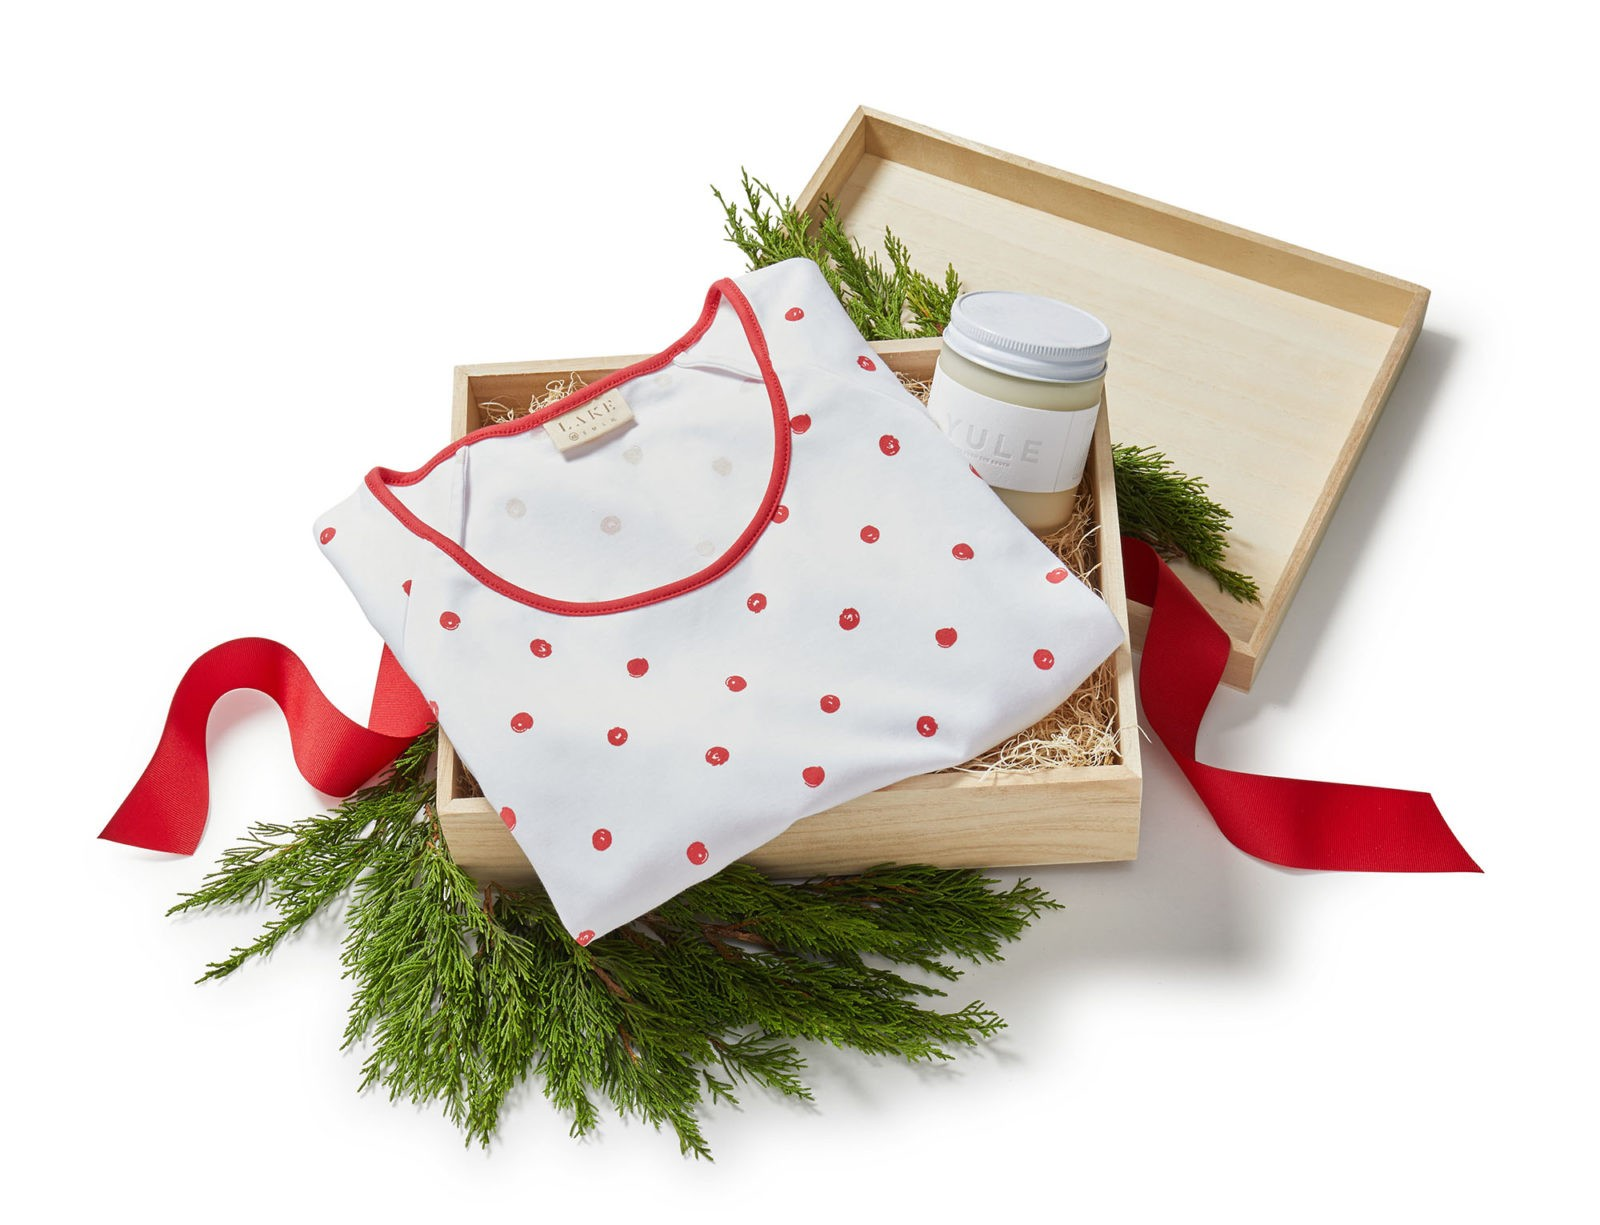 Fashion-Apparel-Gift-Box-Product-Photographer-Los-Angeles